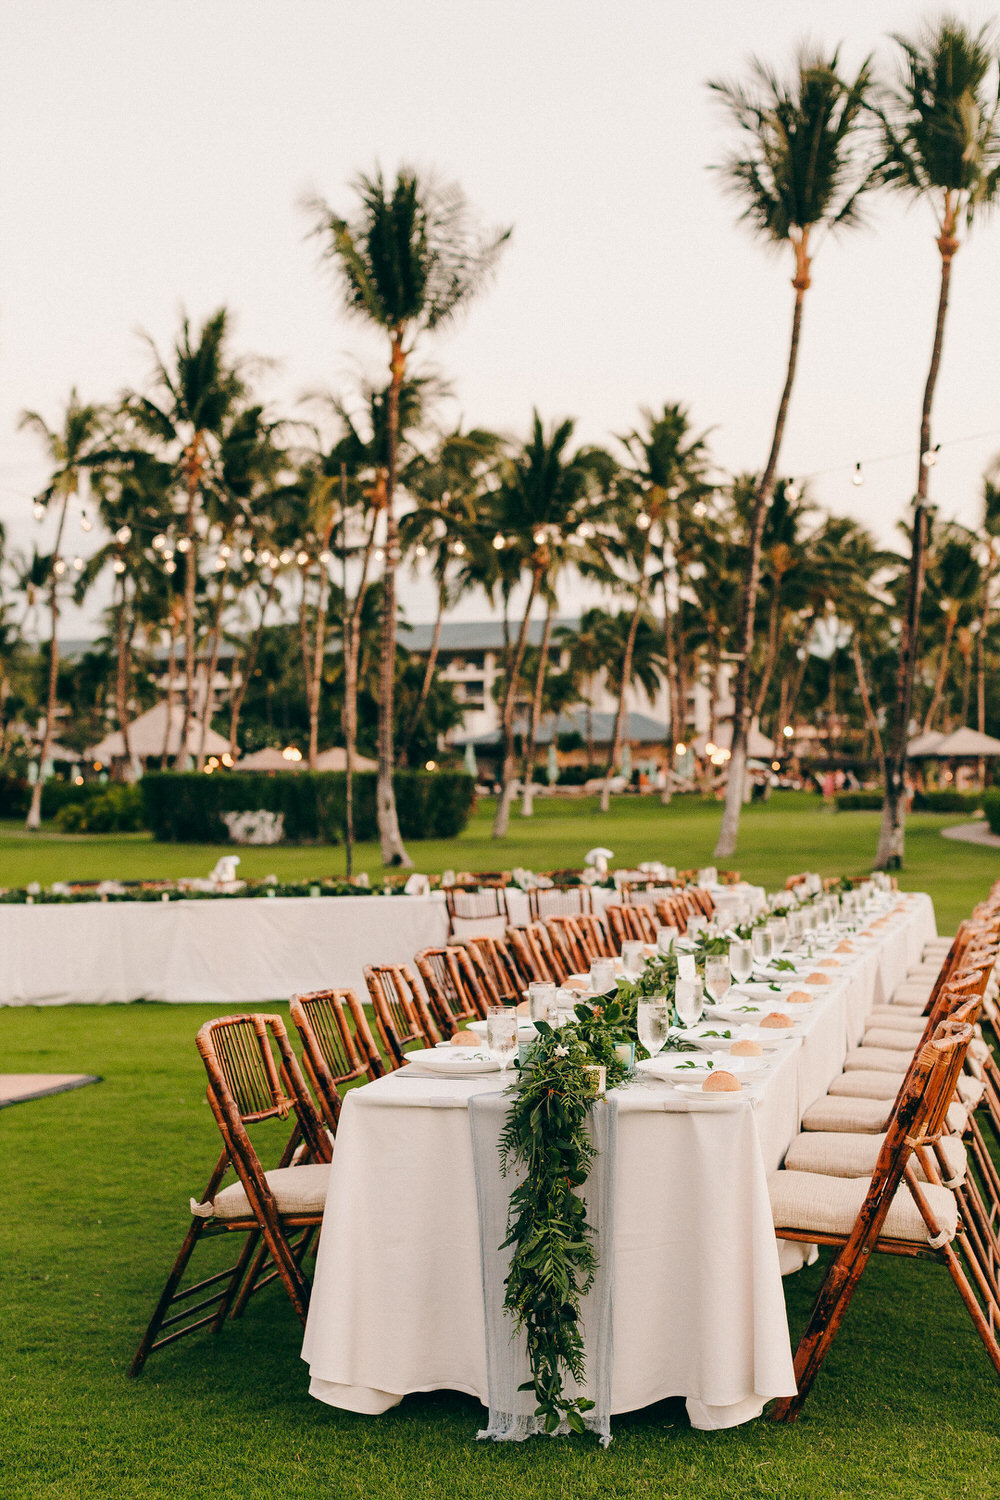 fairmont-orchid-resort-kona-hawaii-wedding-097